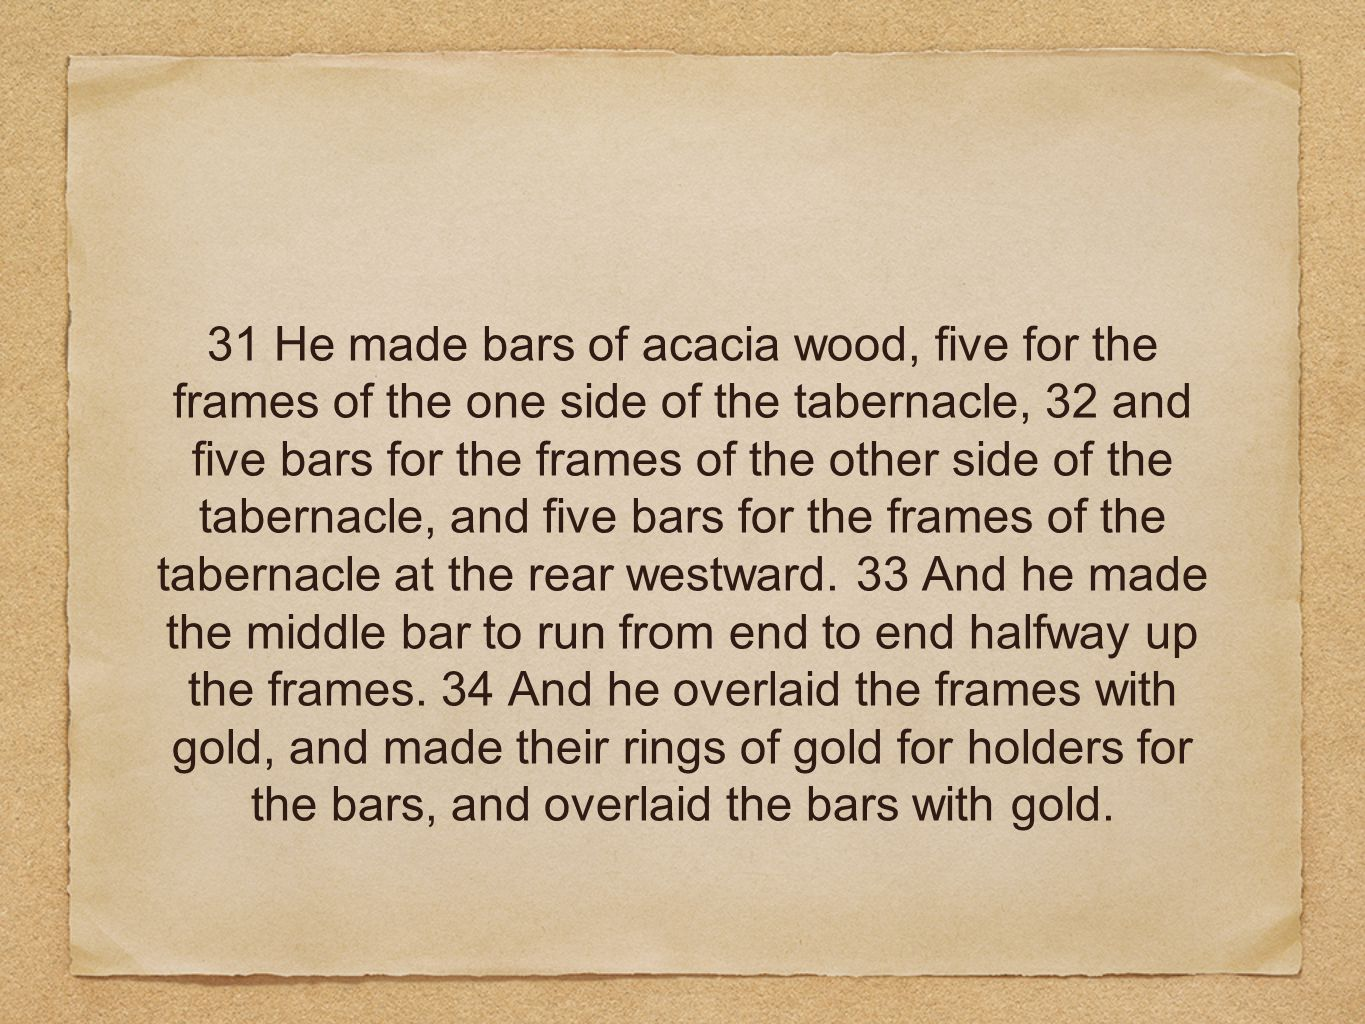 31 He made bars of acacia wood, five for the frames of the one side of the tabernacle, 32 and five bars for the frames of the other side of the tabernacle, and five bars for the frames of the tabernacle at the rear westward.